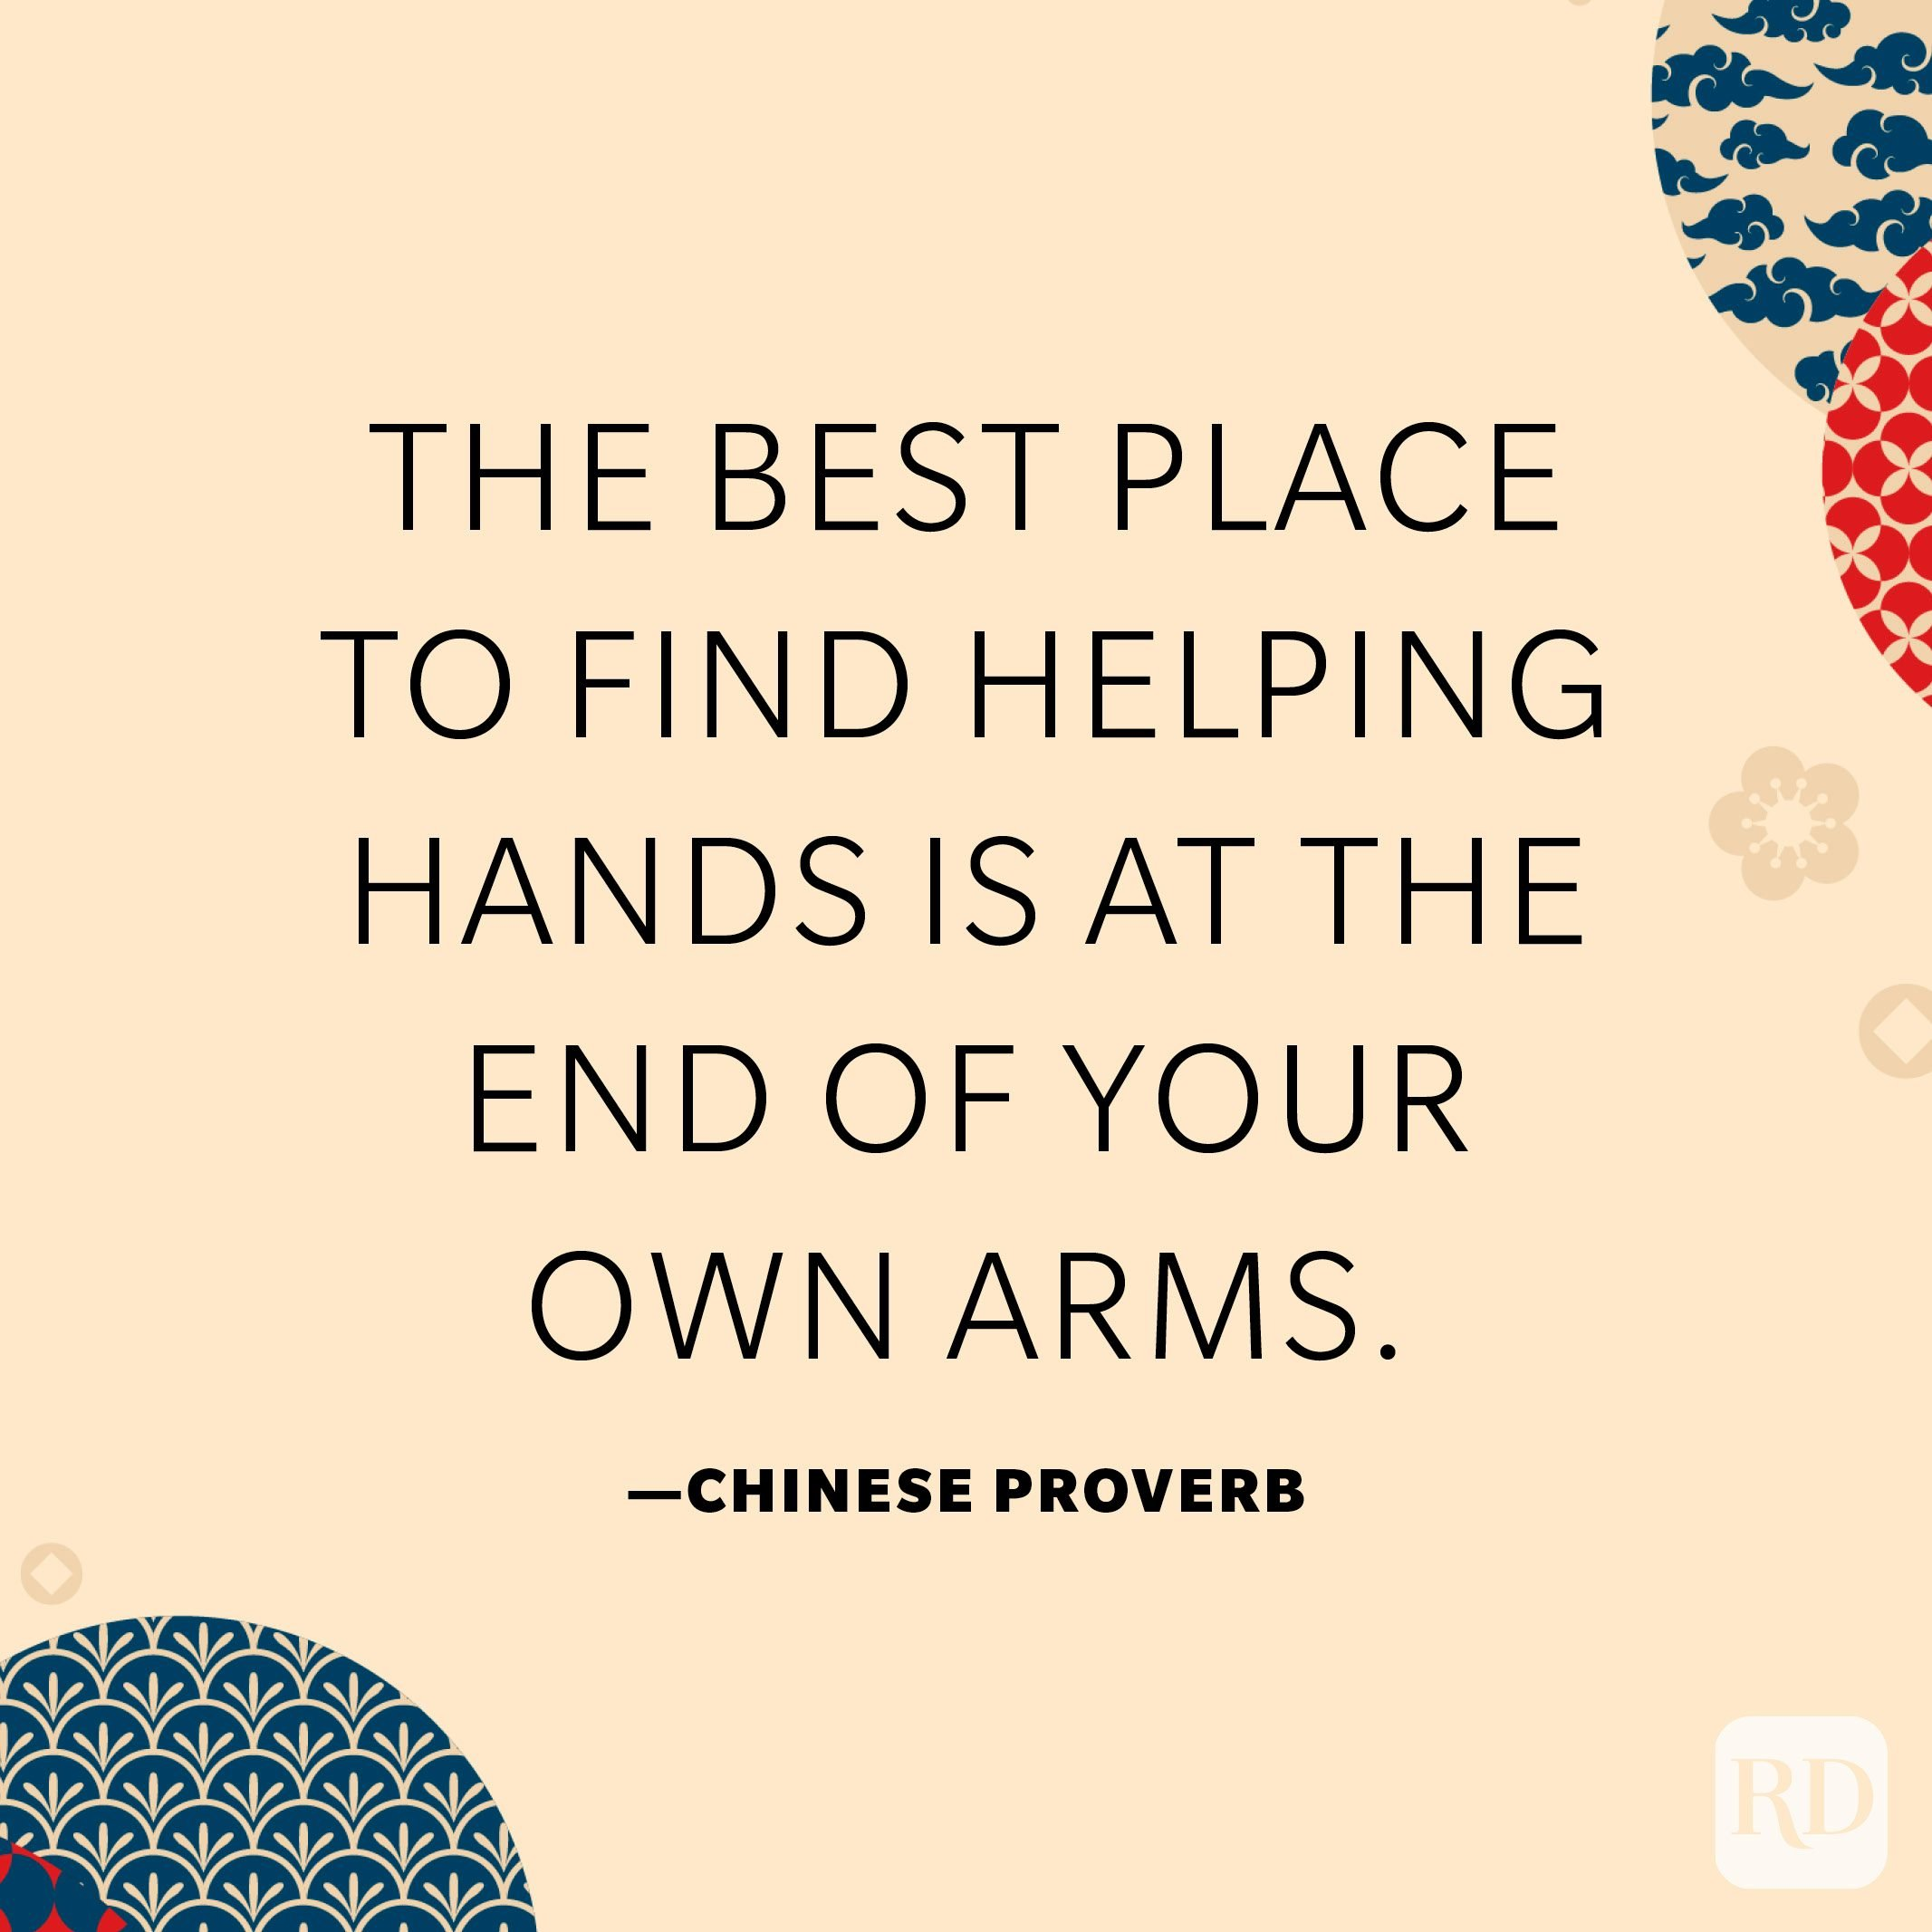 The best place to find helping hands is at the end of your own arms